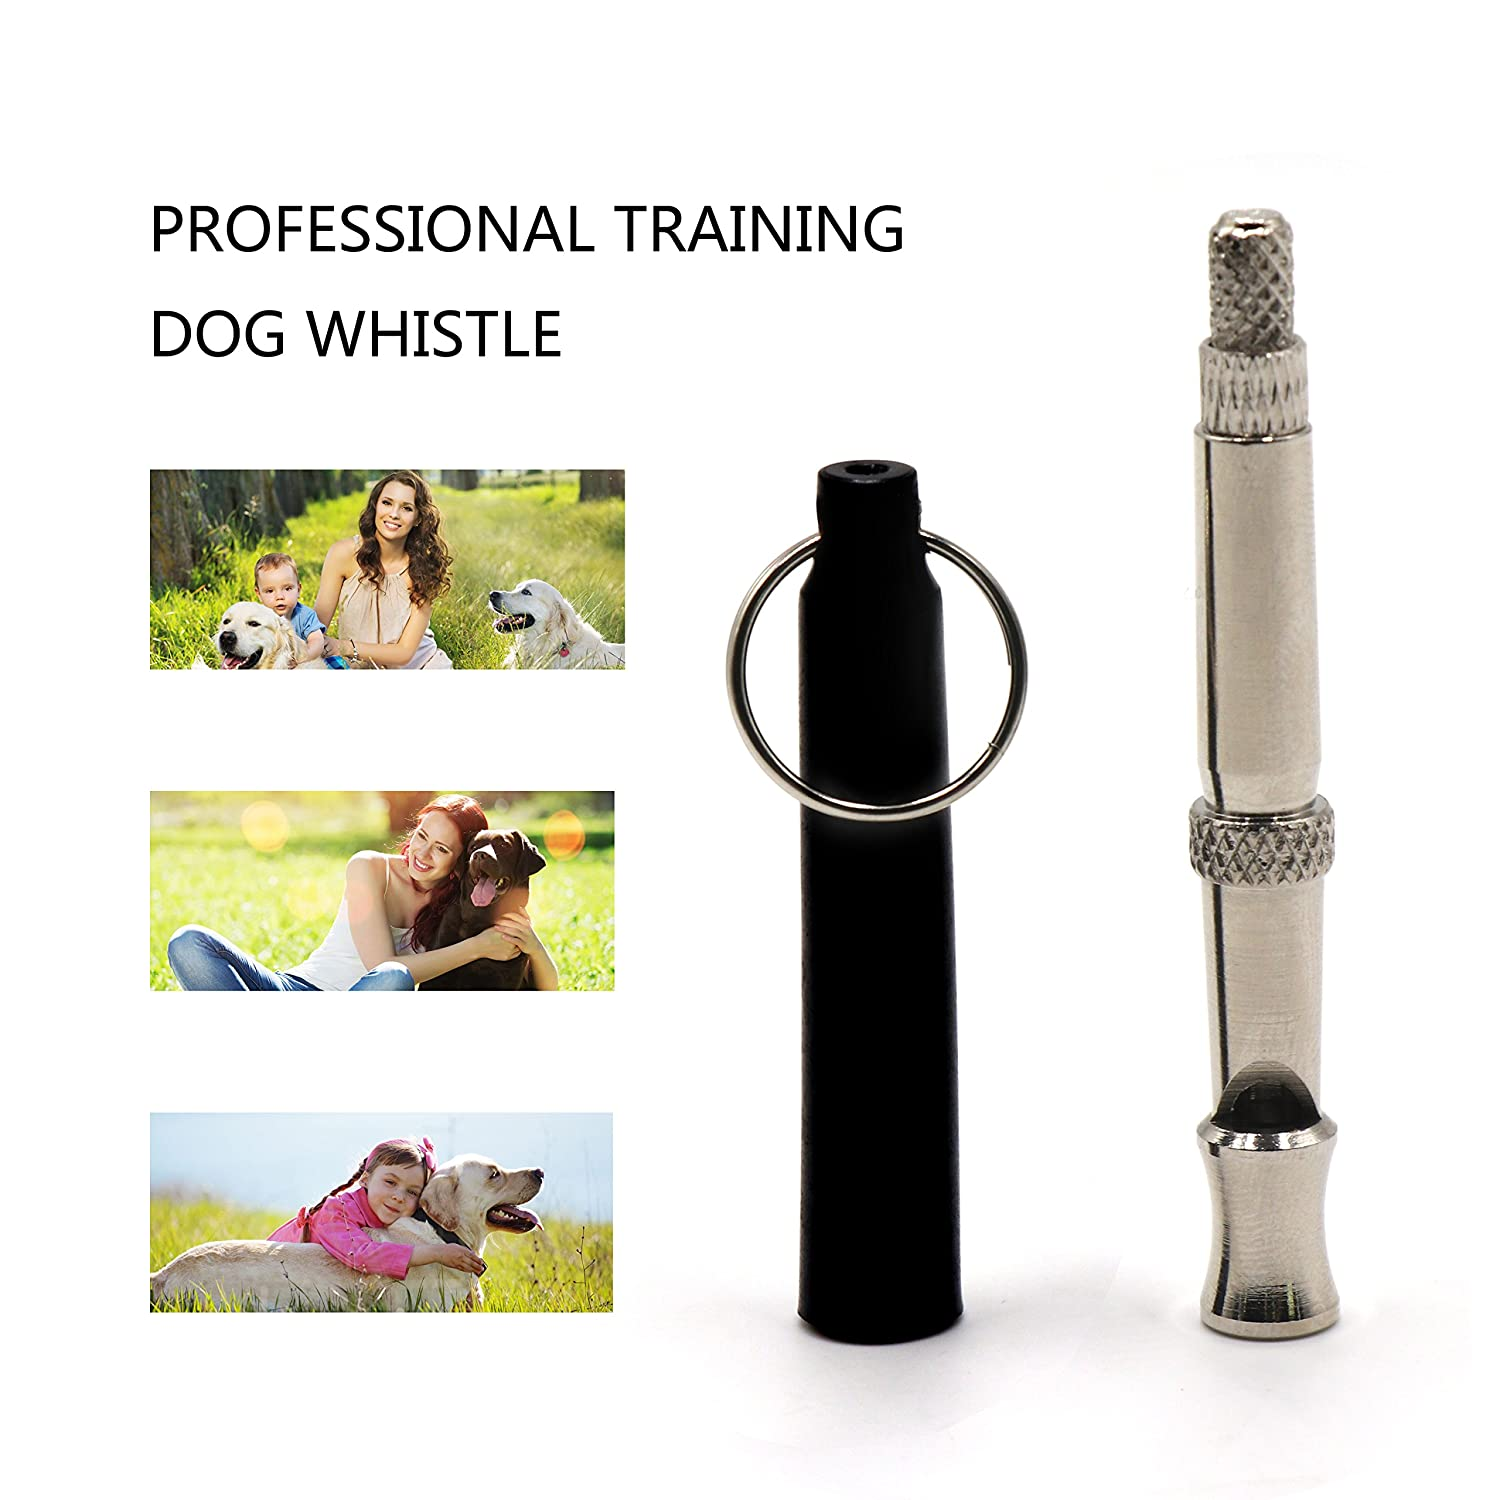 FRETOD Professional Ultrasonic Dog Training Whistle 2 Pack with Clicker /& Lanyard Train Your Dog to Stop Barking